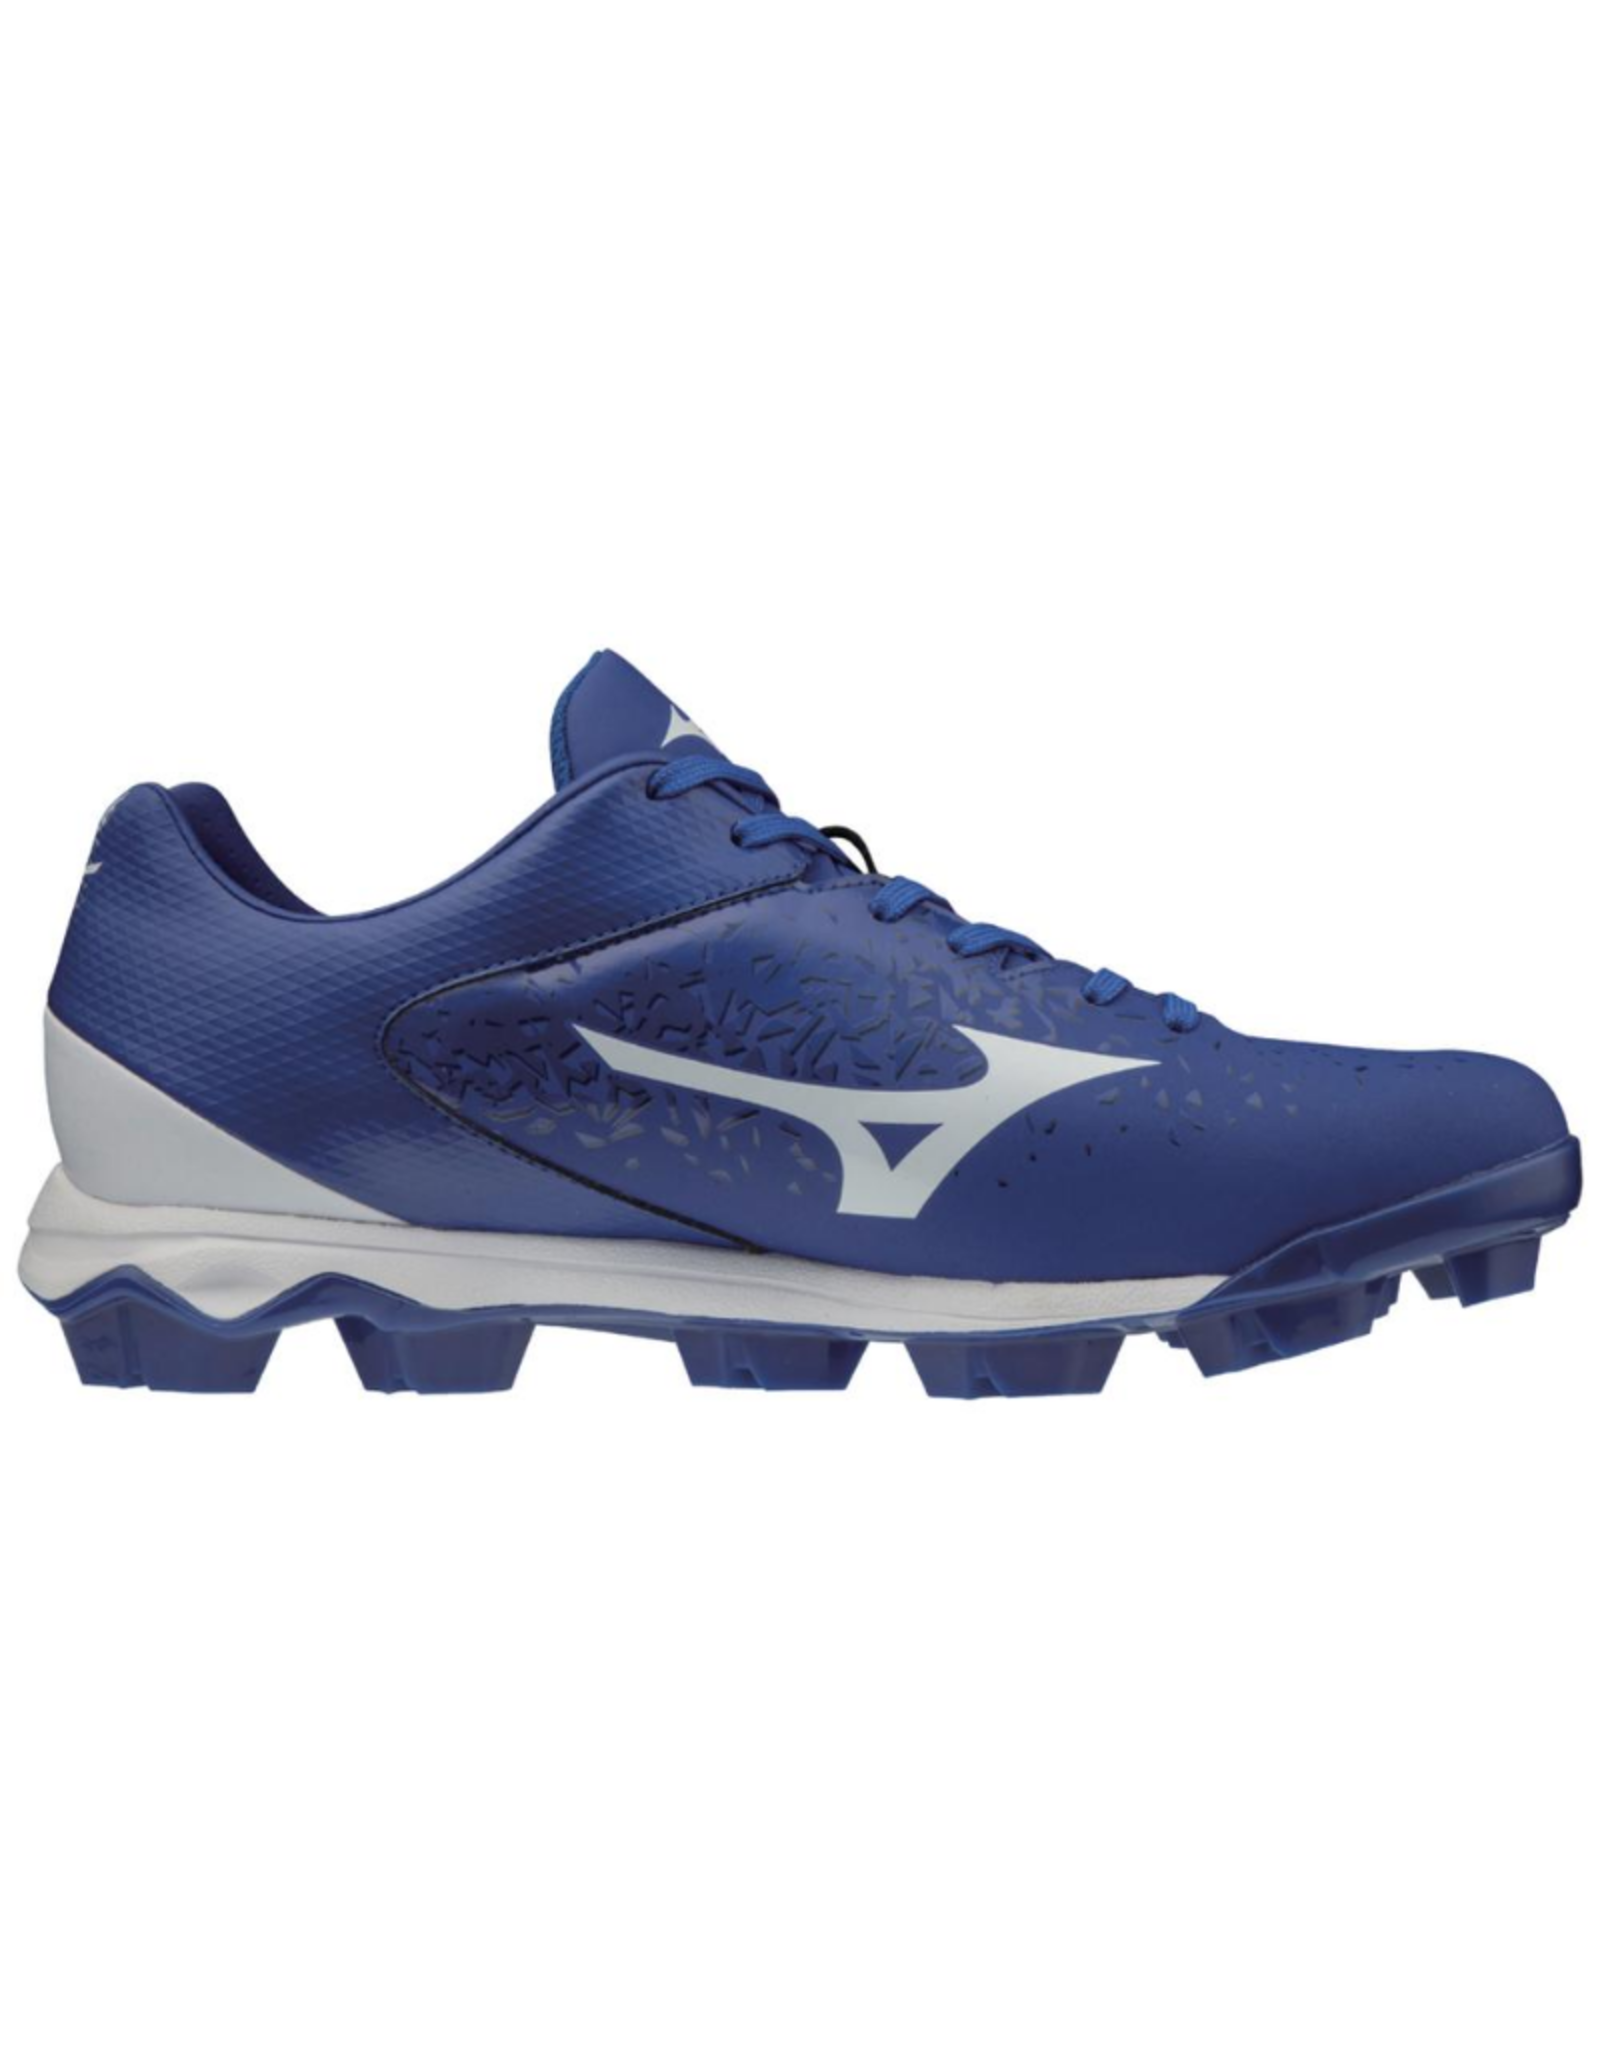 Mizuno Wave Select 9 Low Men's Baseball Cleat Royal/White